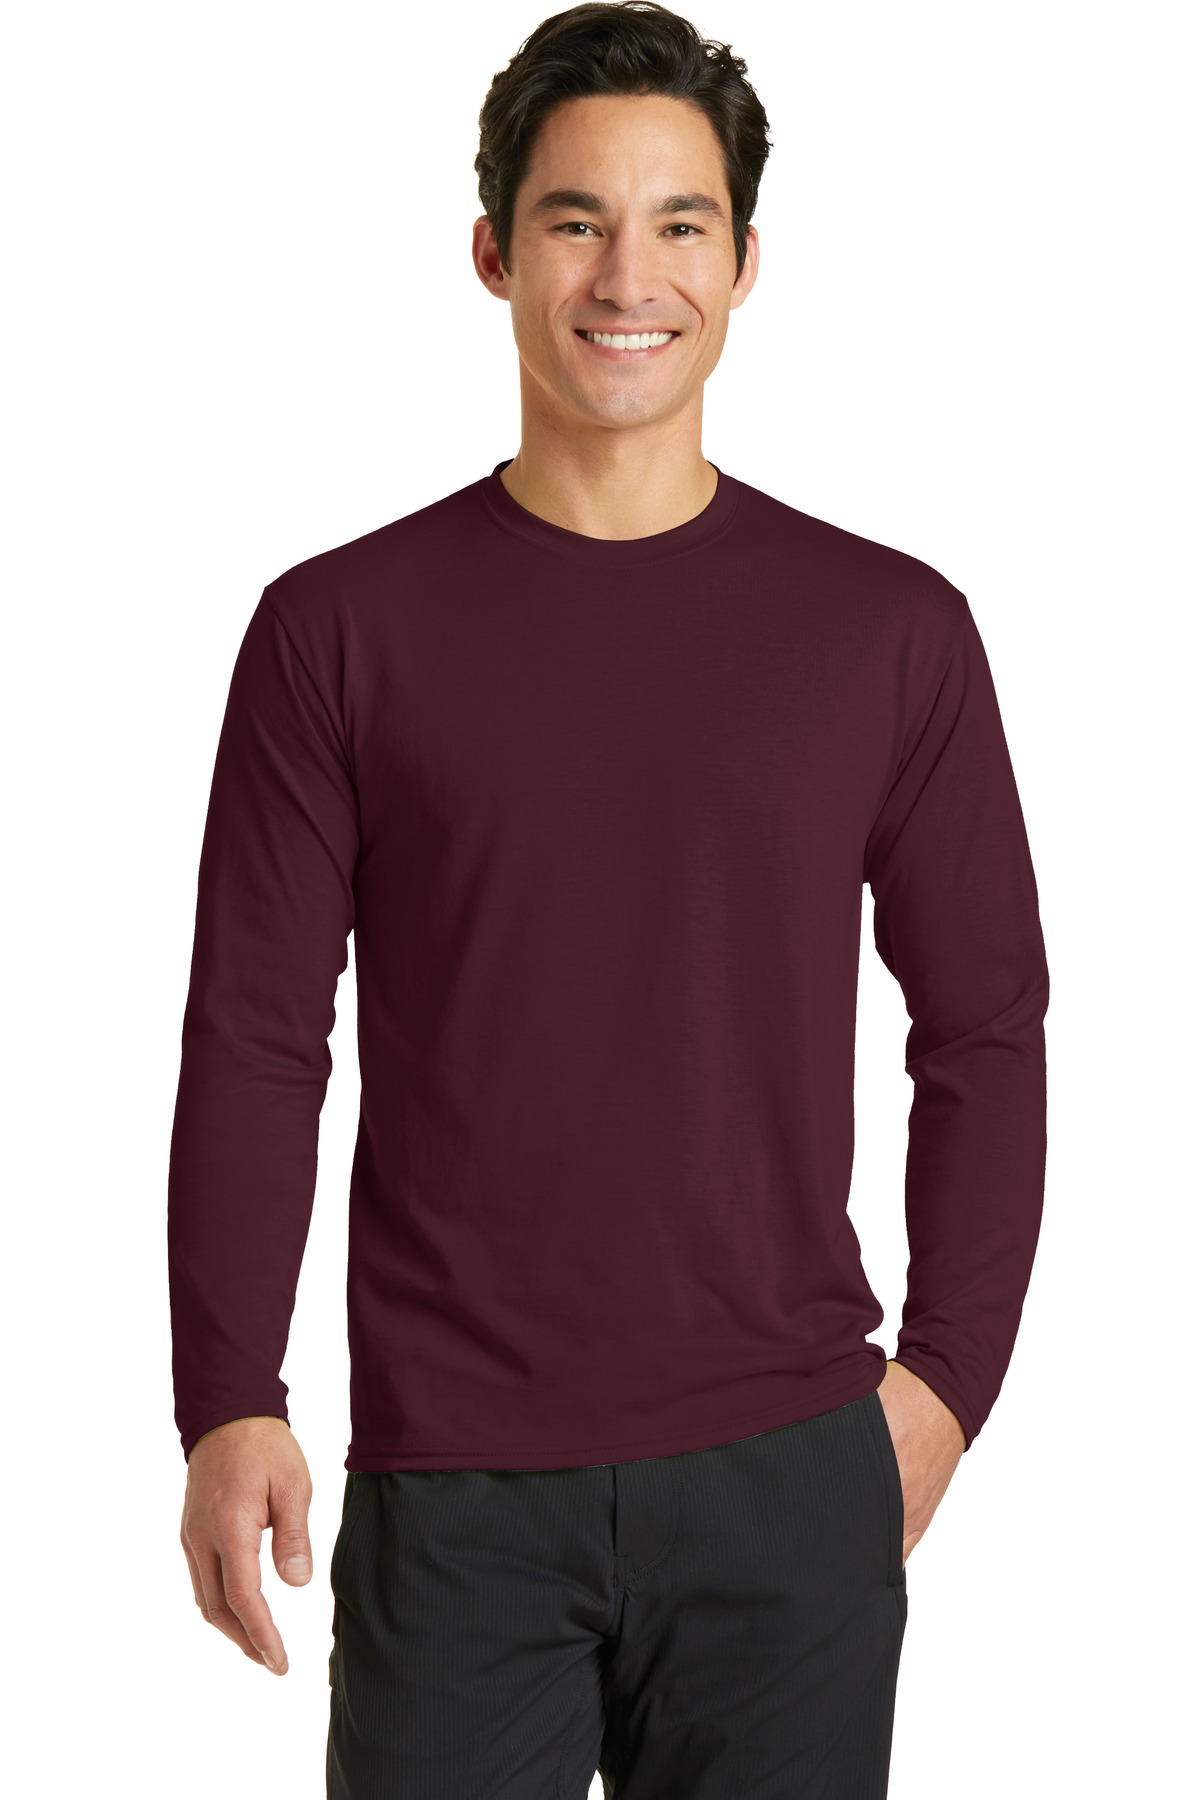 click to view Athletic Maroon